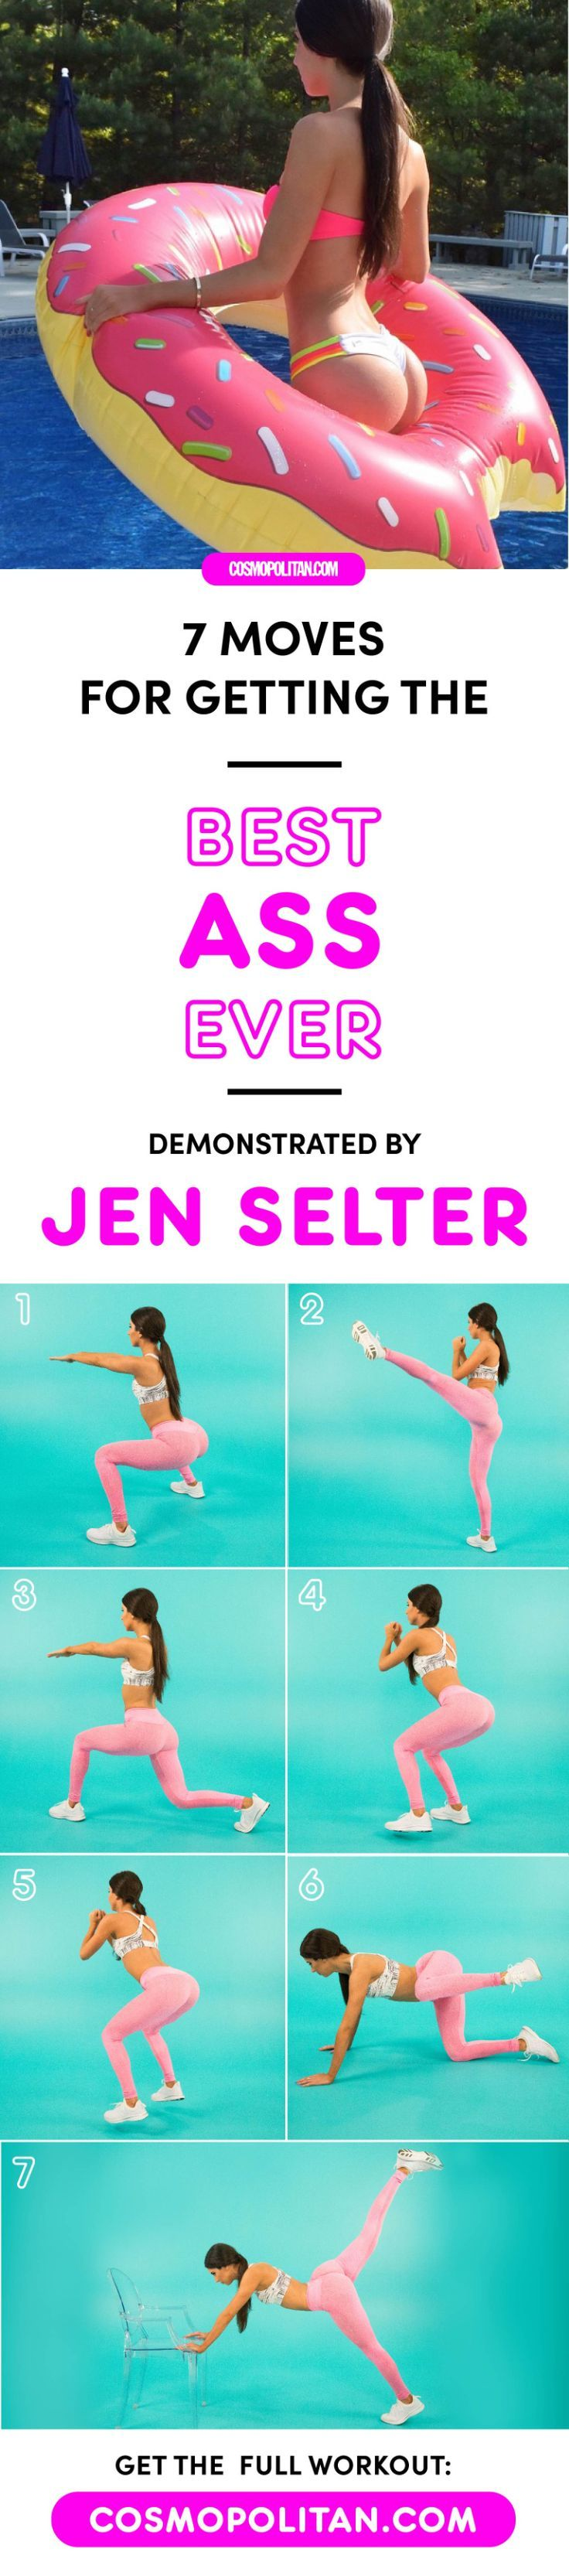 7 Moves for Getting the Best Ass Ever, Demonstrated by Jen Selter – [⚡️]